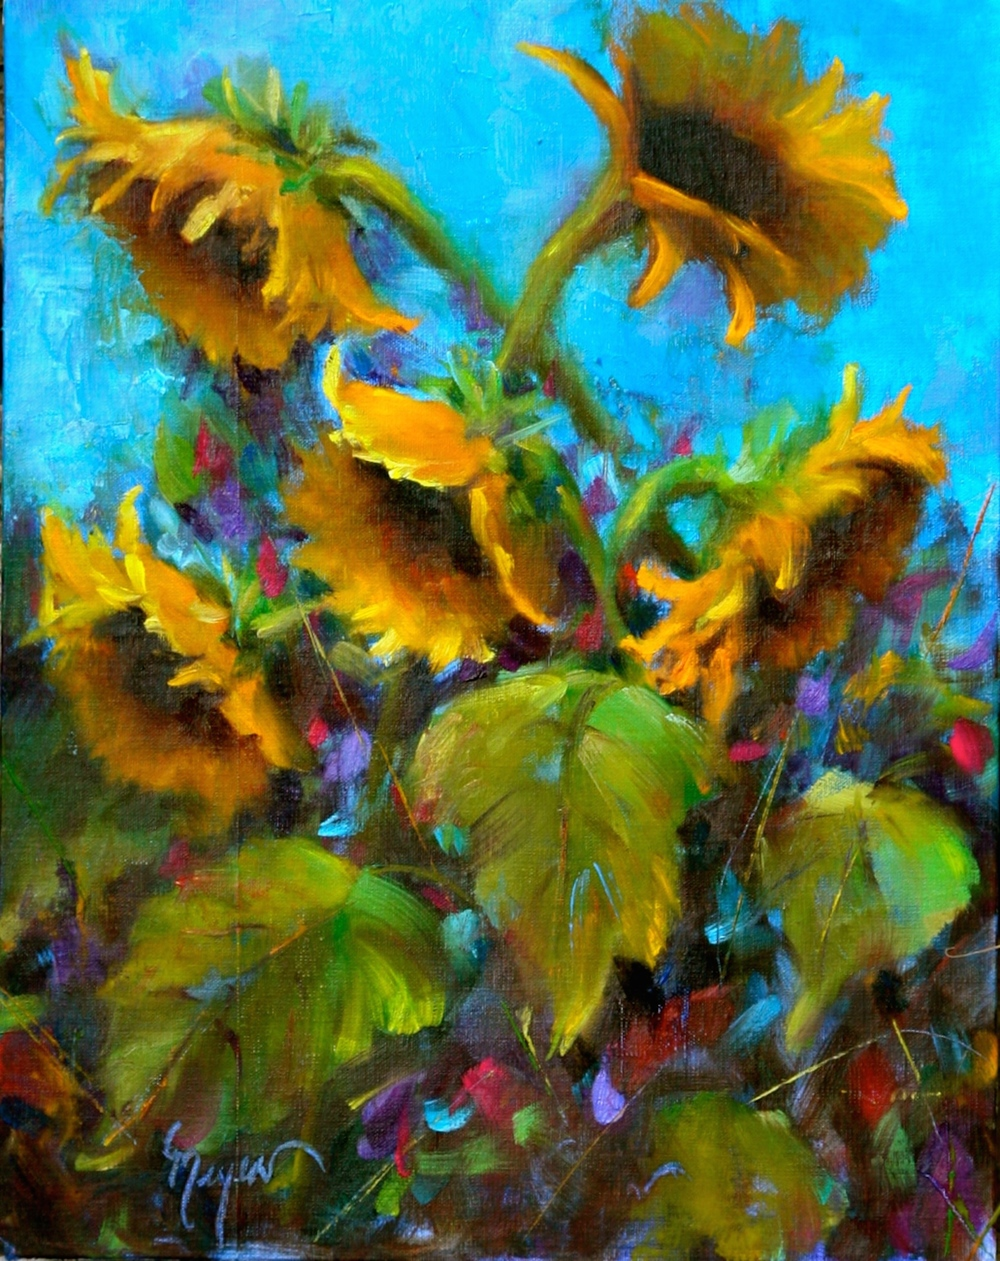 PatMeyer_Sunny Sunflowers 14 x 11 oil on canvas_jpeg.jpg